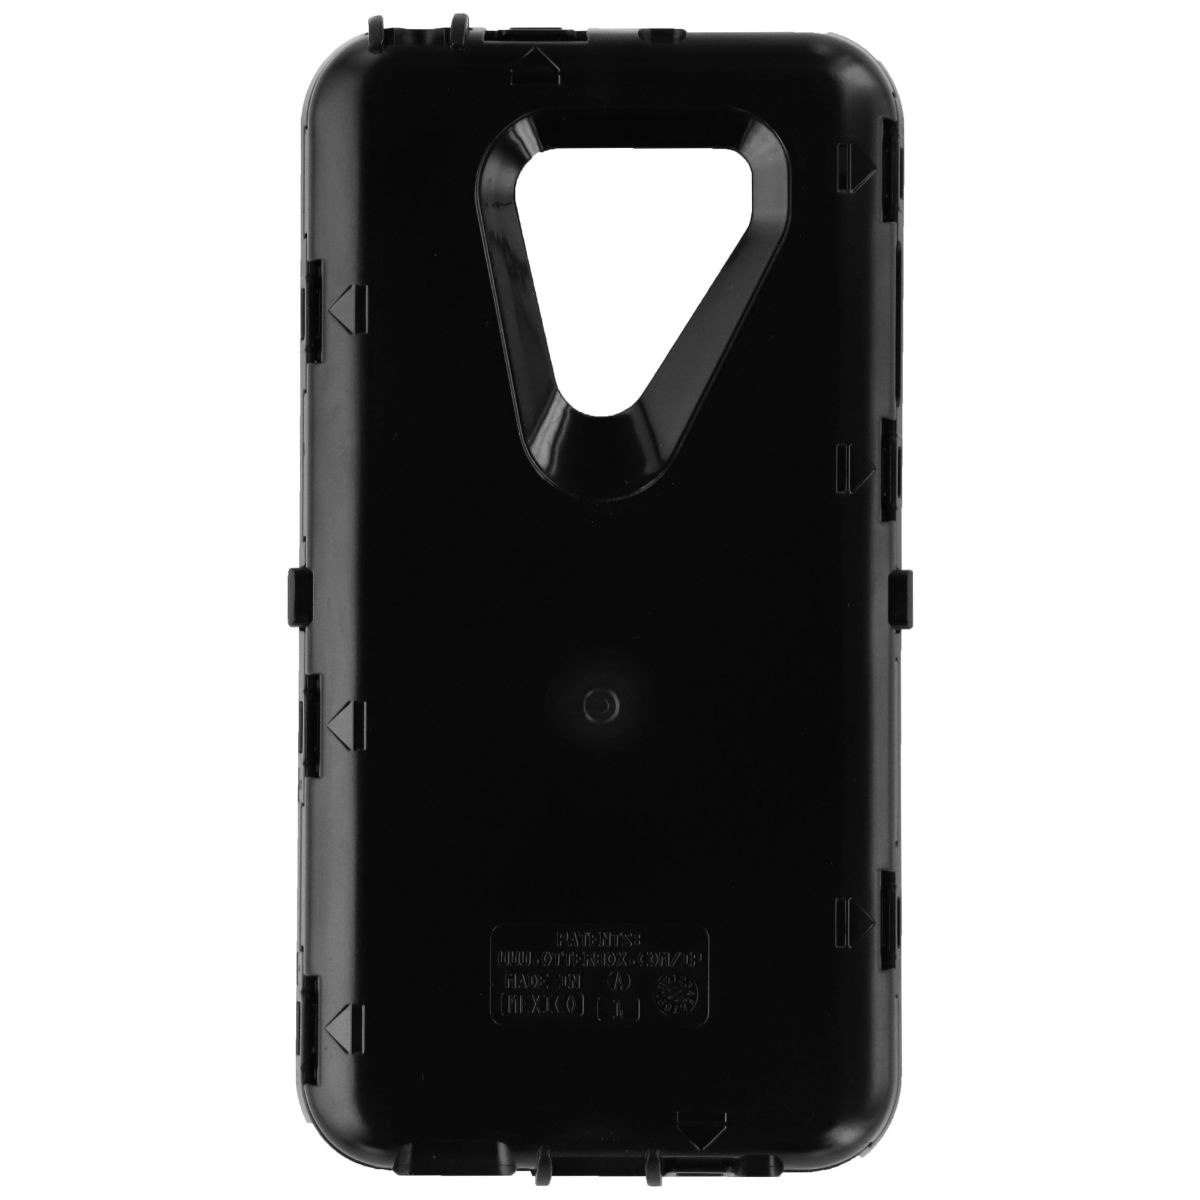 new product 6c834 d9913 OtterBox Defender Series Replacement Interior Shell for LG V30/V30+ ...